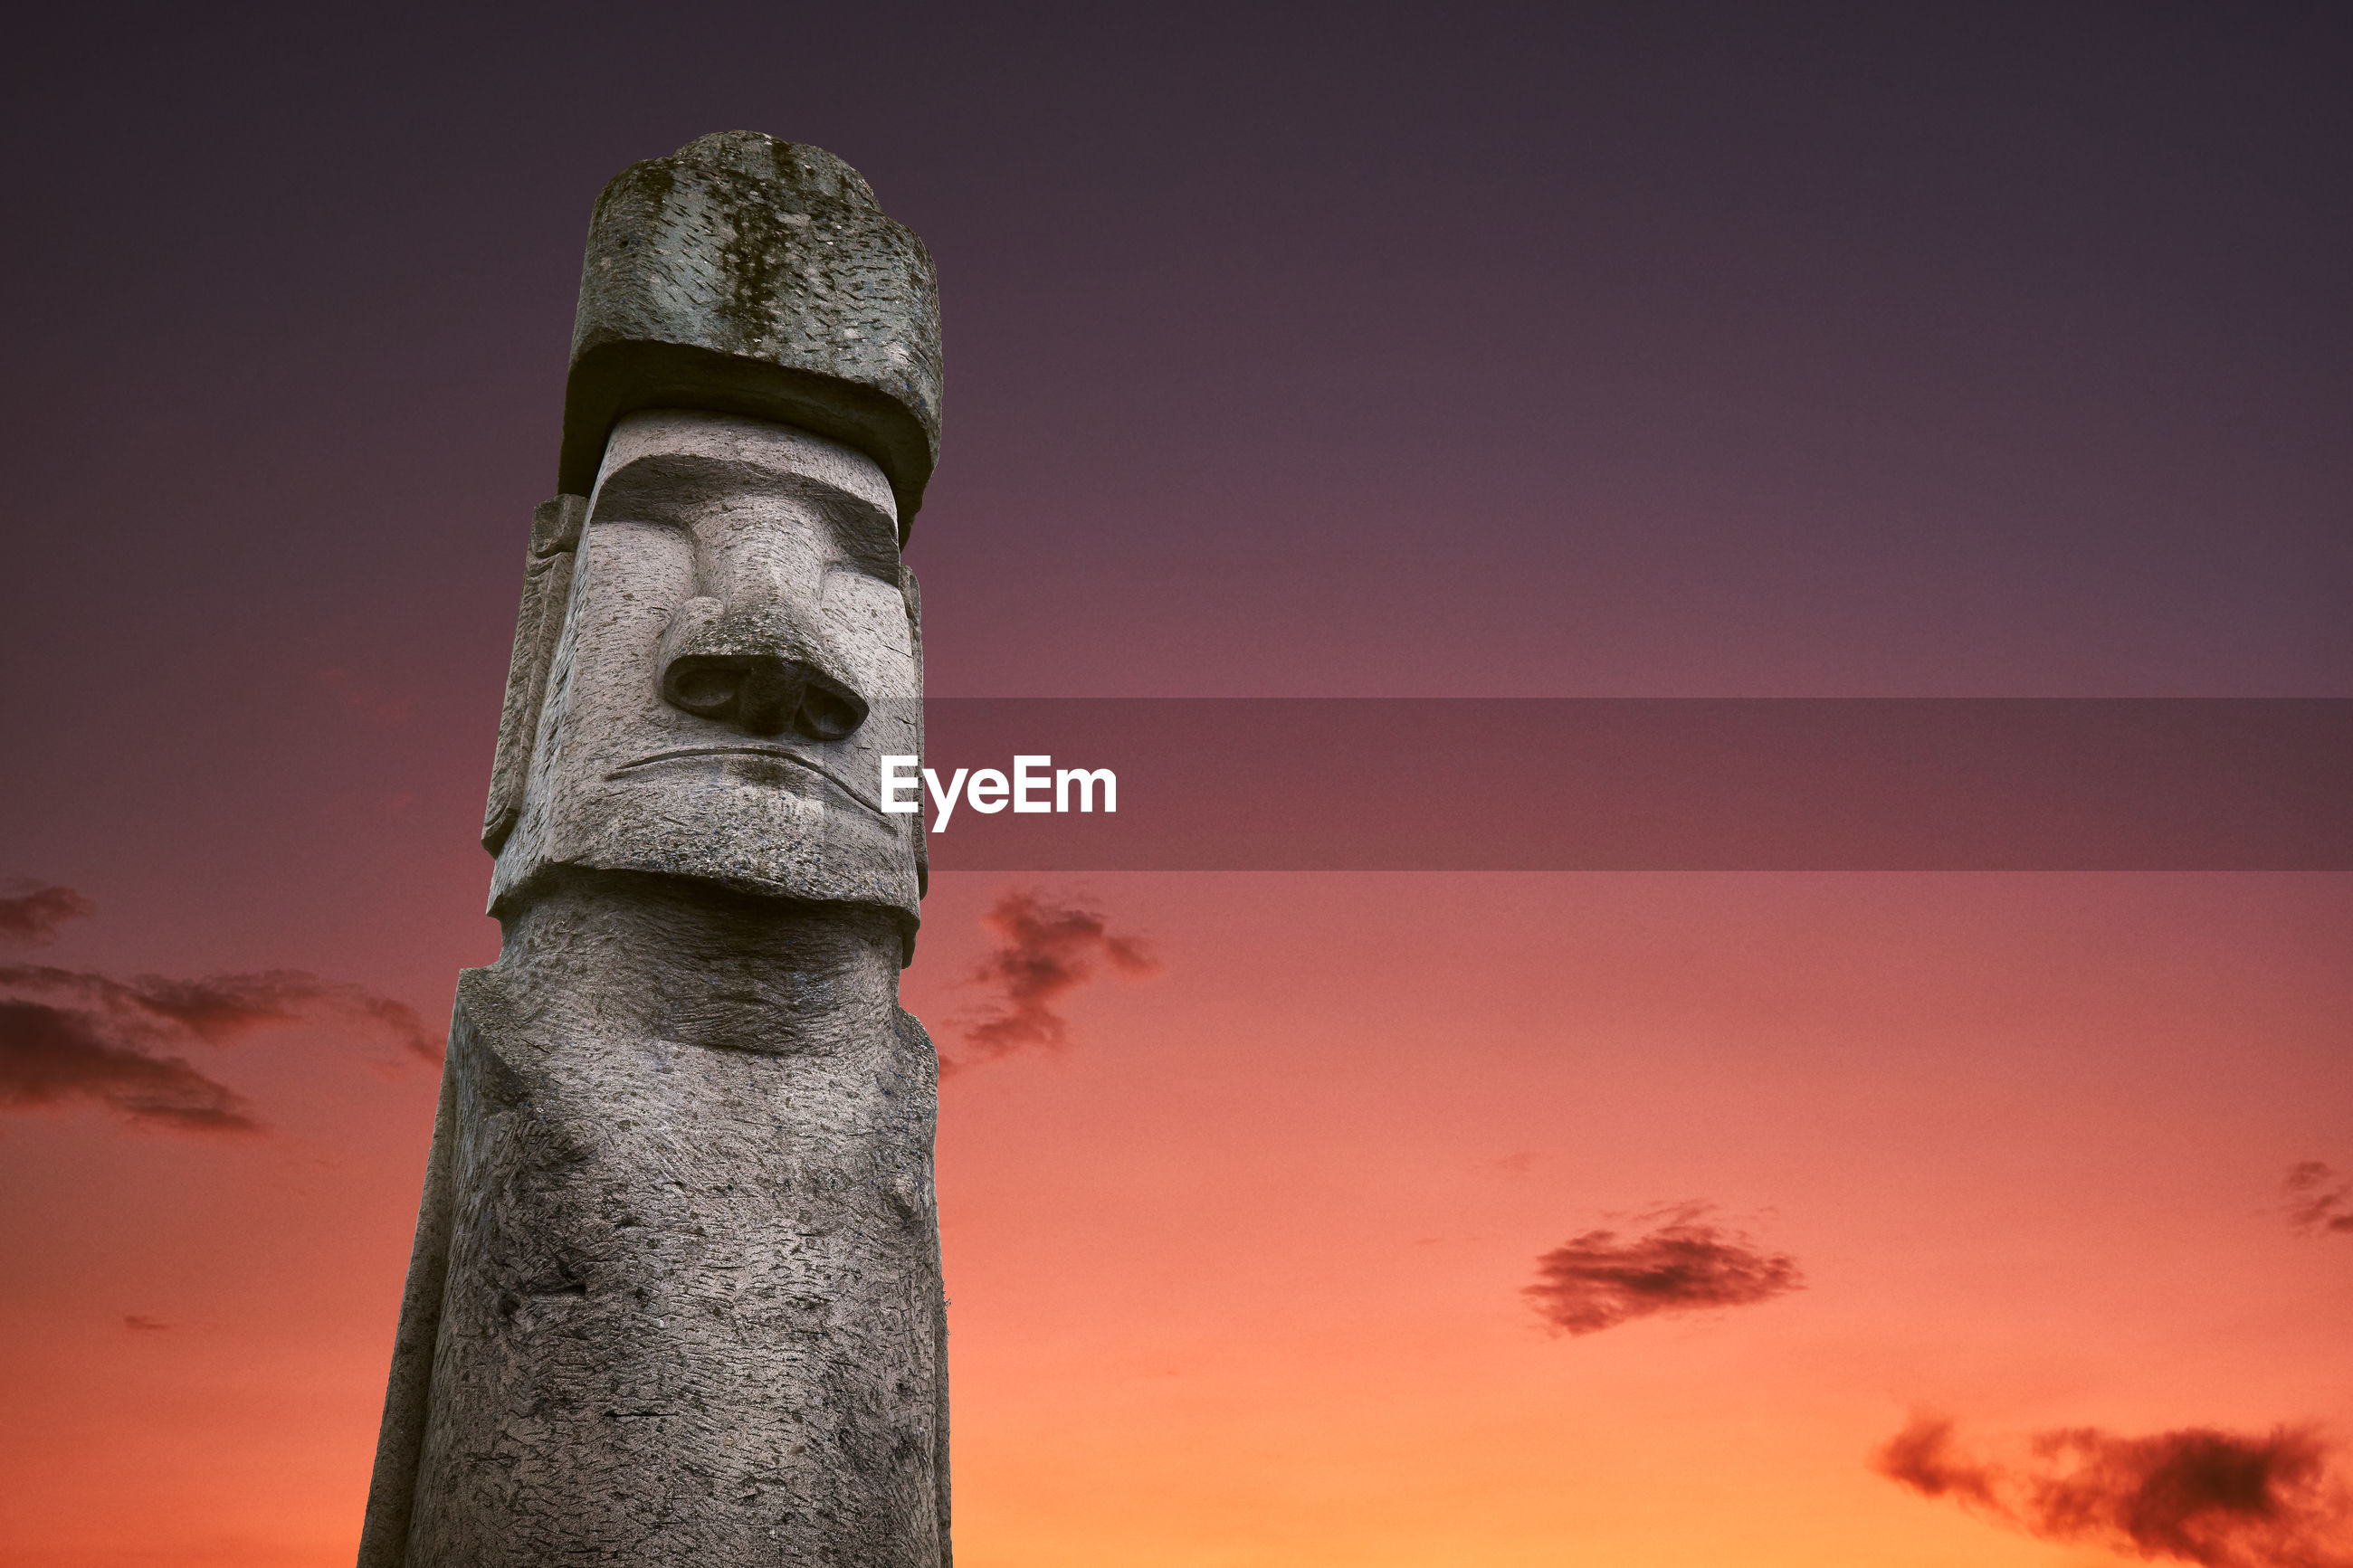 An ancient moai statue at easter island and rapa nui civilization at sunset with clouds